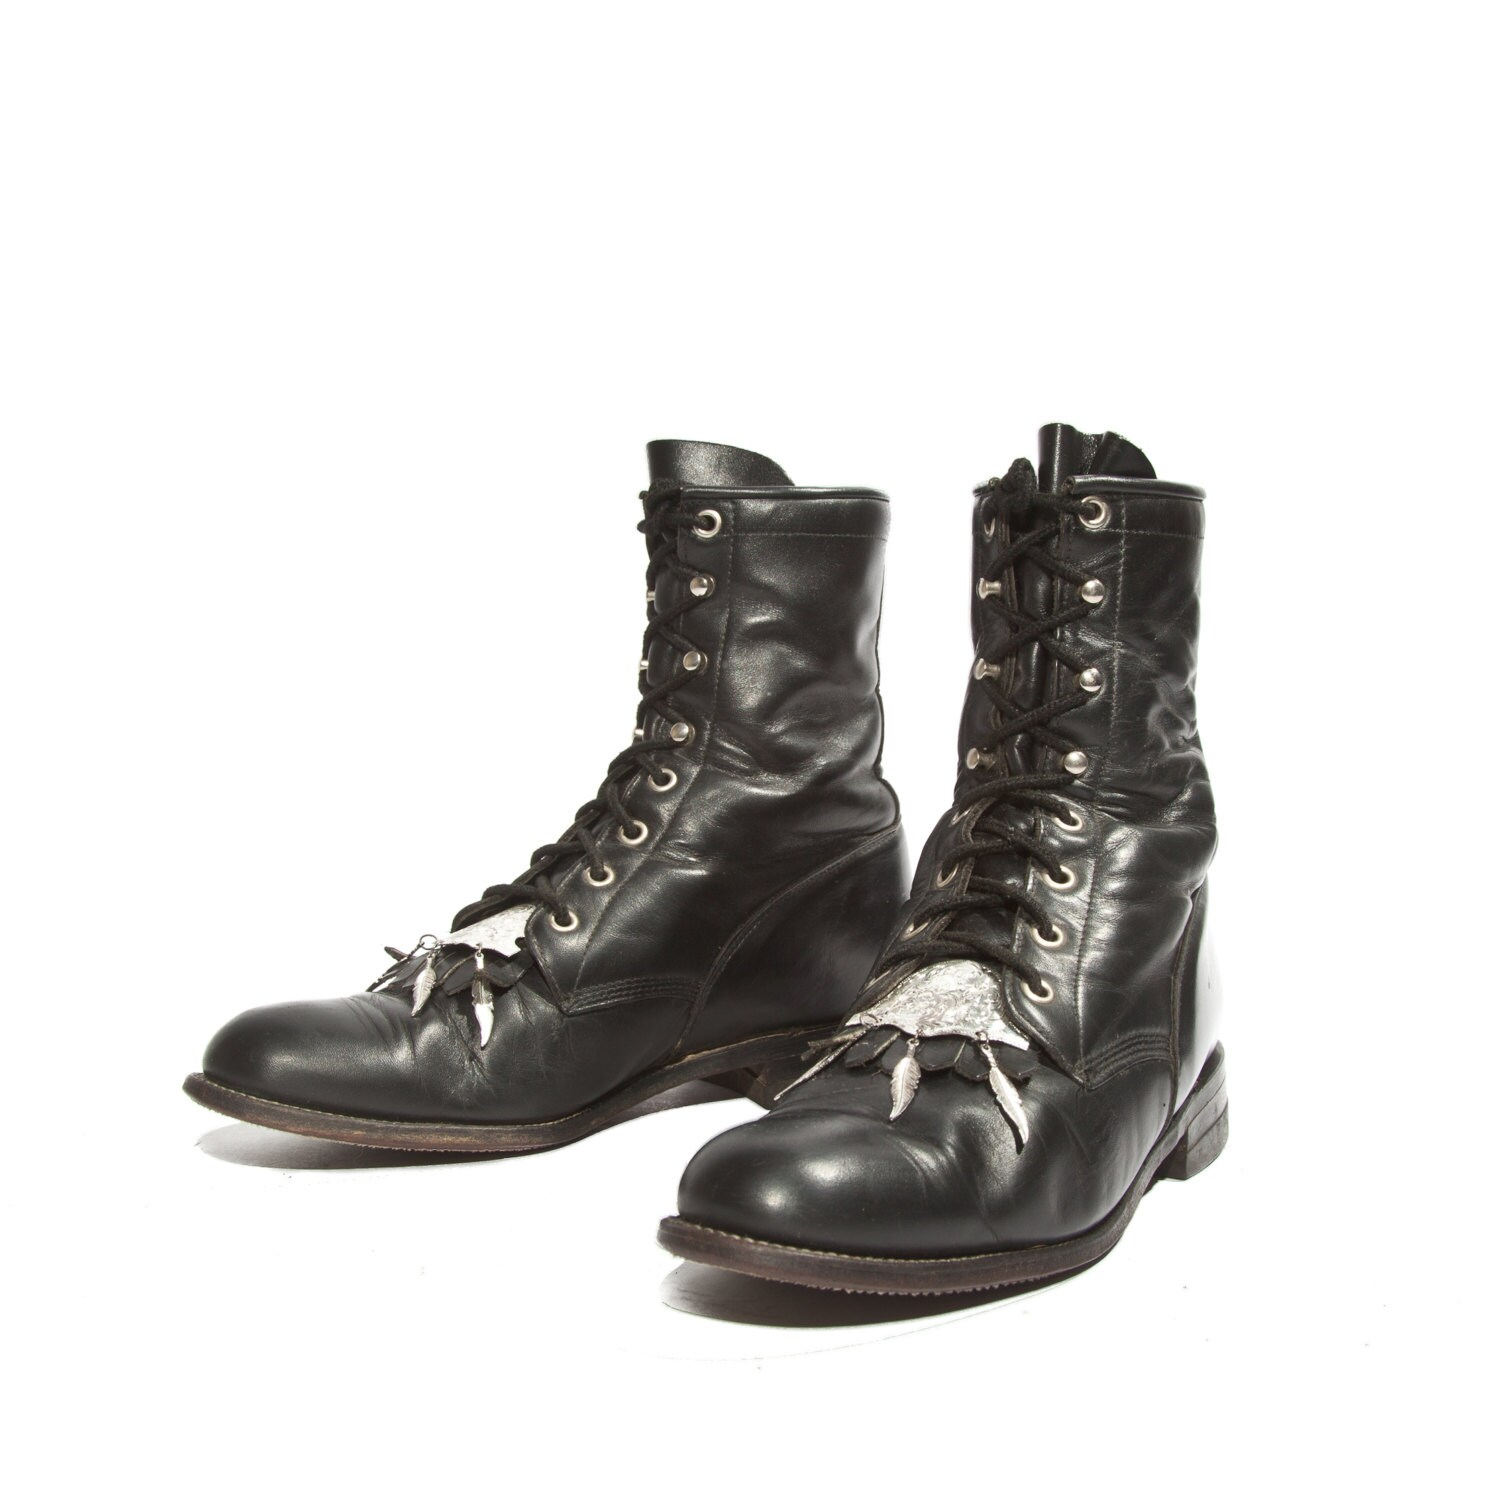 s justin roper lace up boots in black leather by shopndg